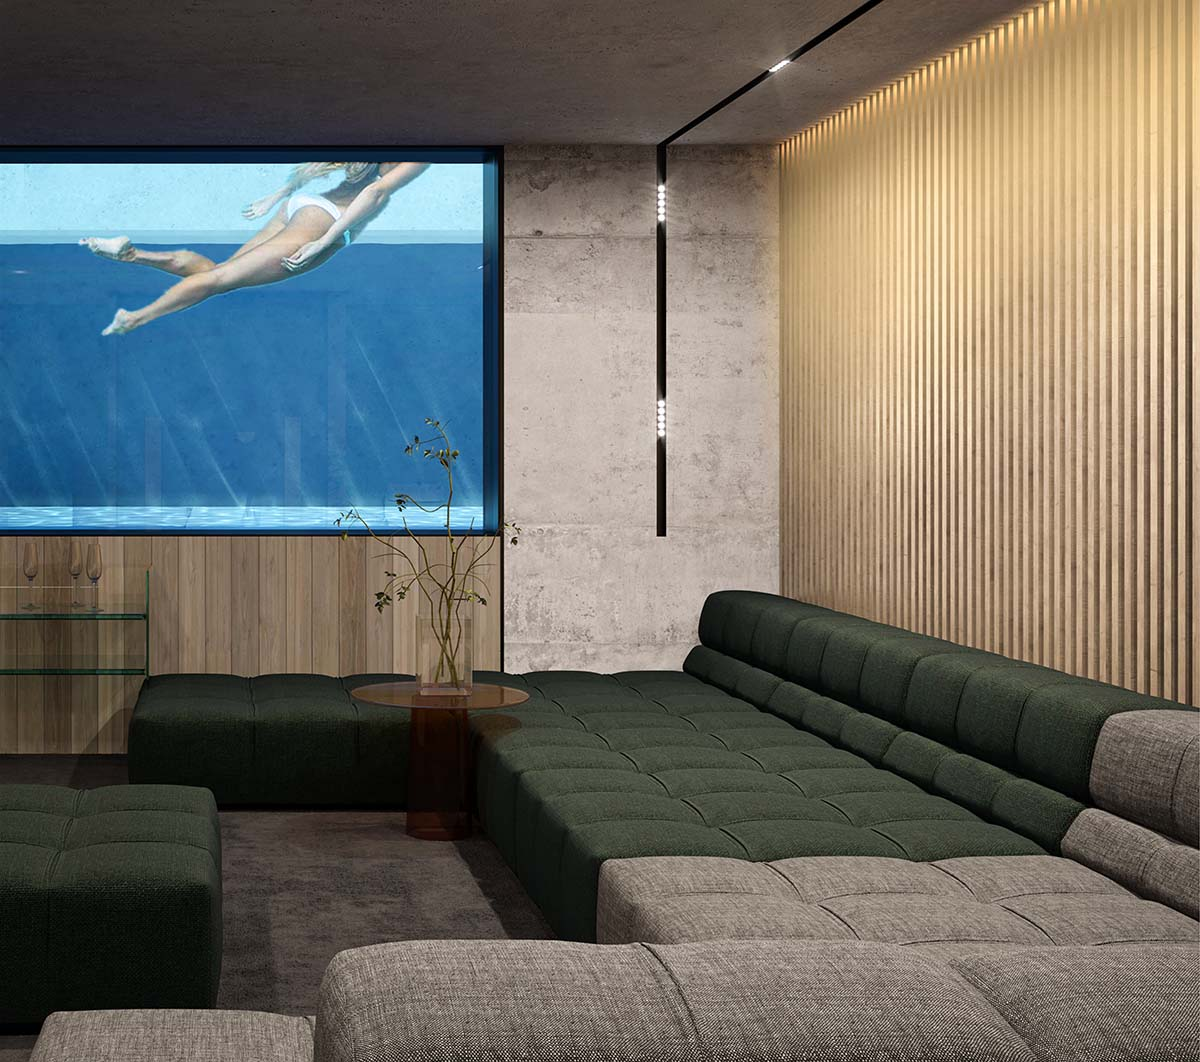 Brutalist living room with swimmin pool and girl swimming there